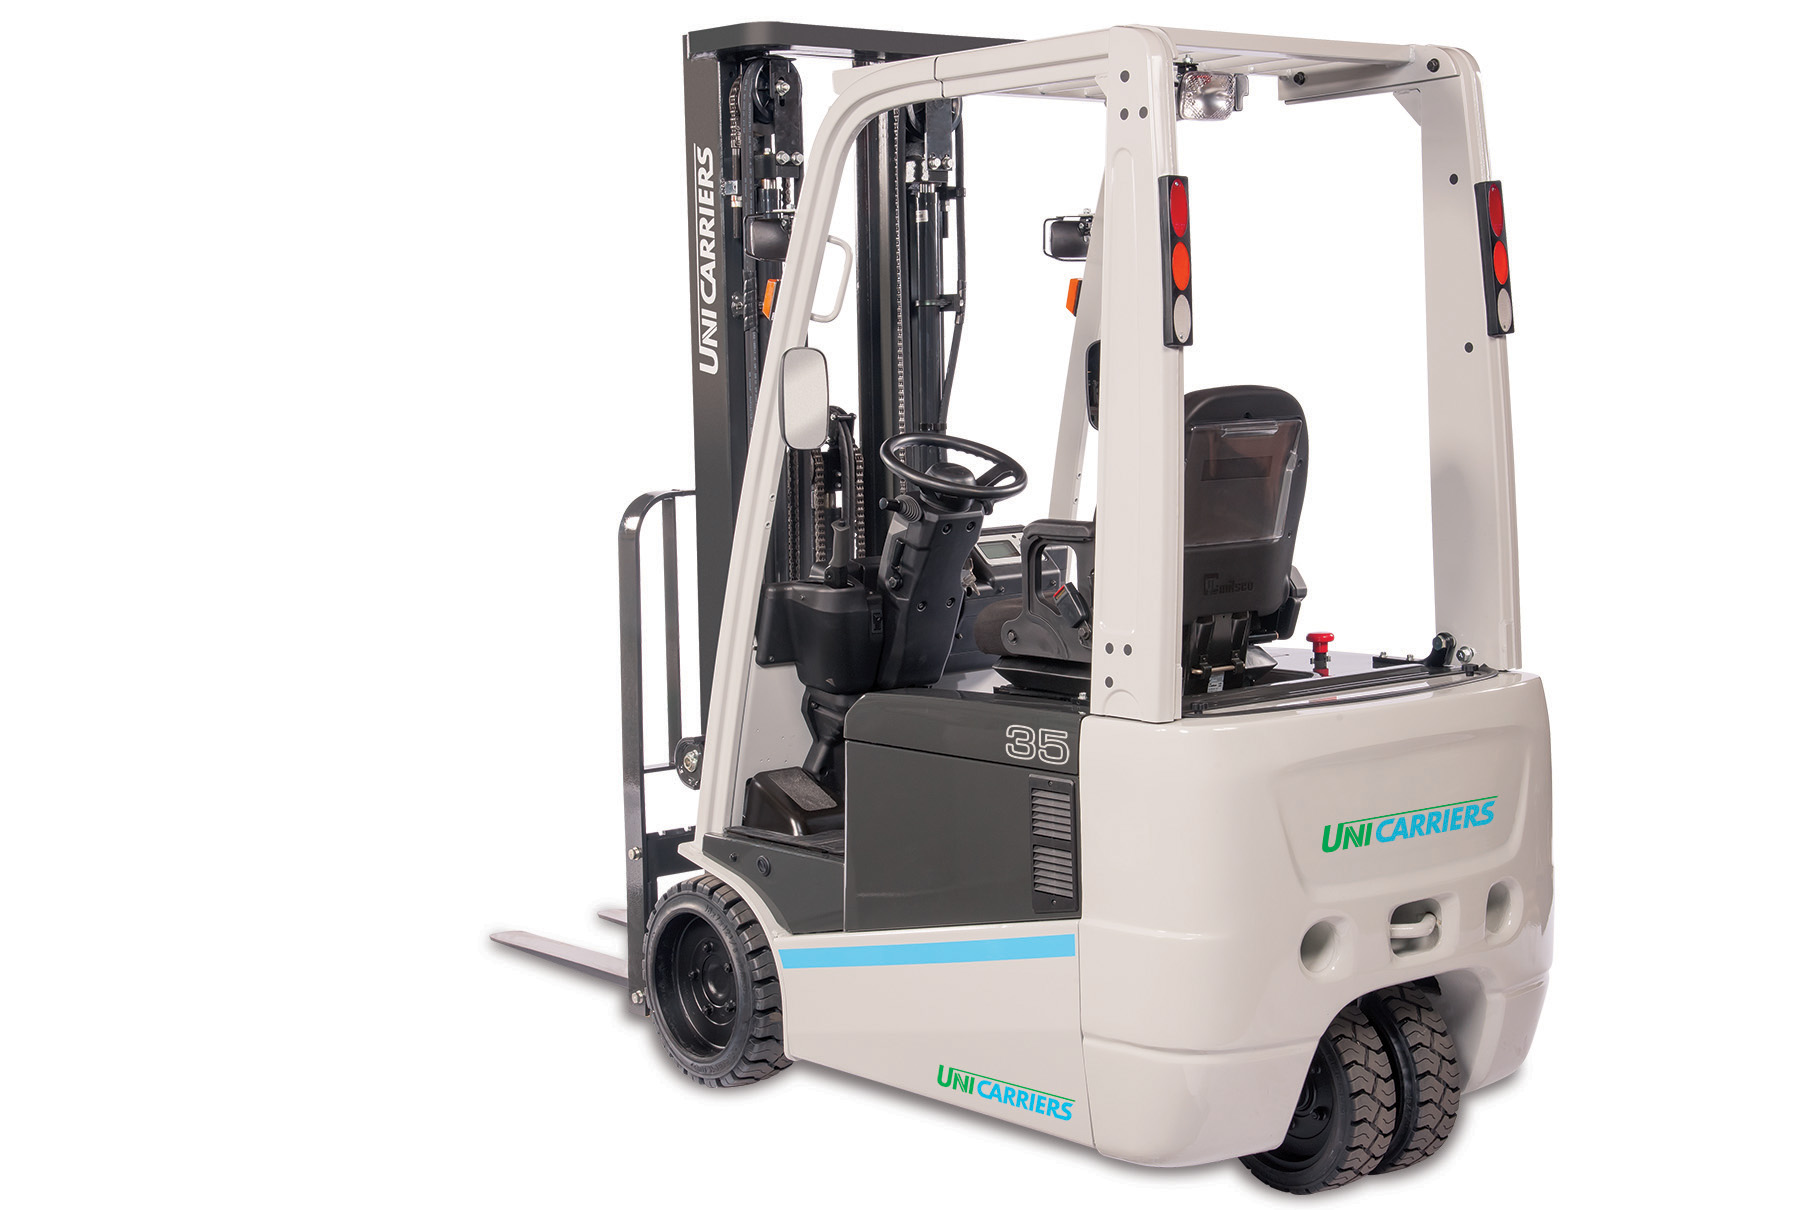 Unicarriers Forklift - Tx-m 3-wheel Electric Forklift